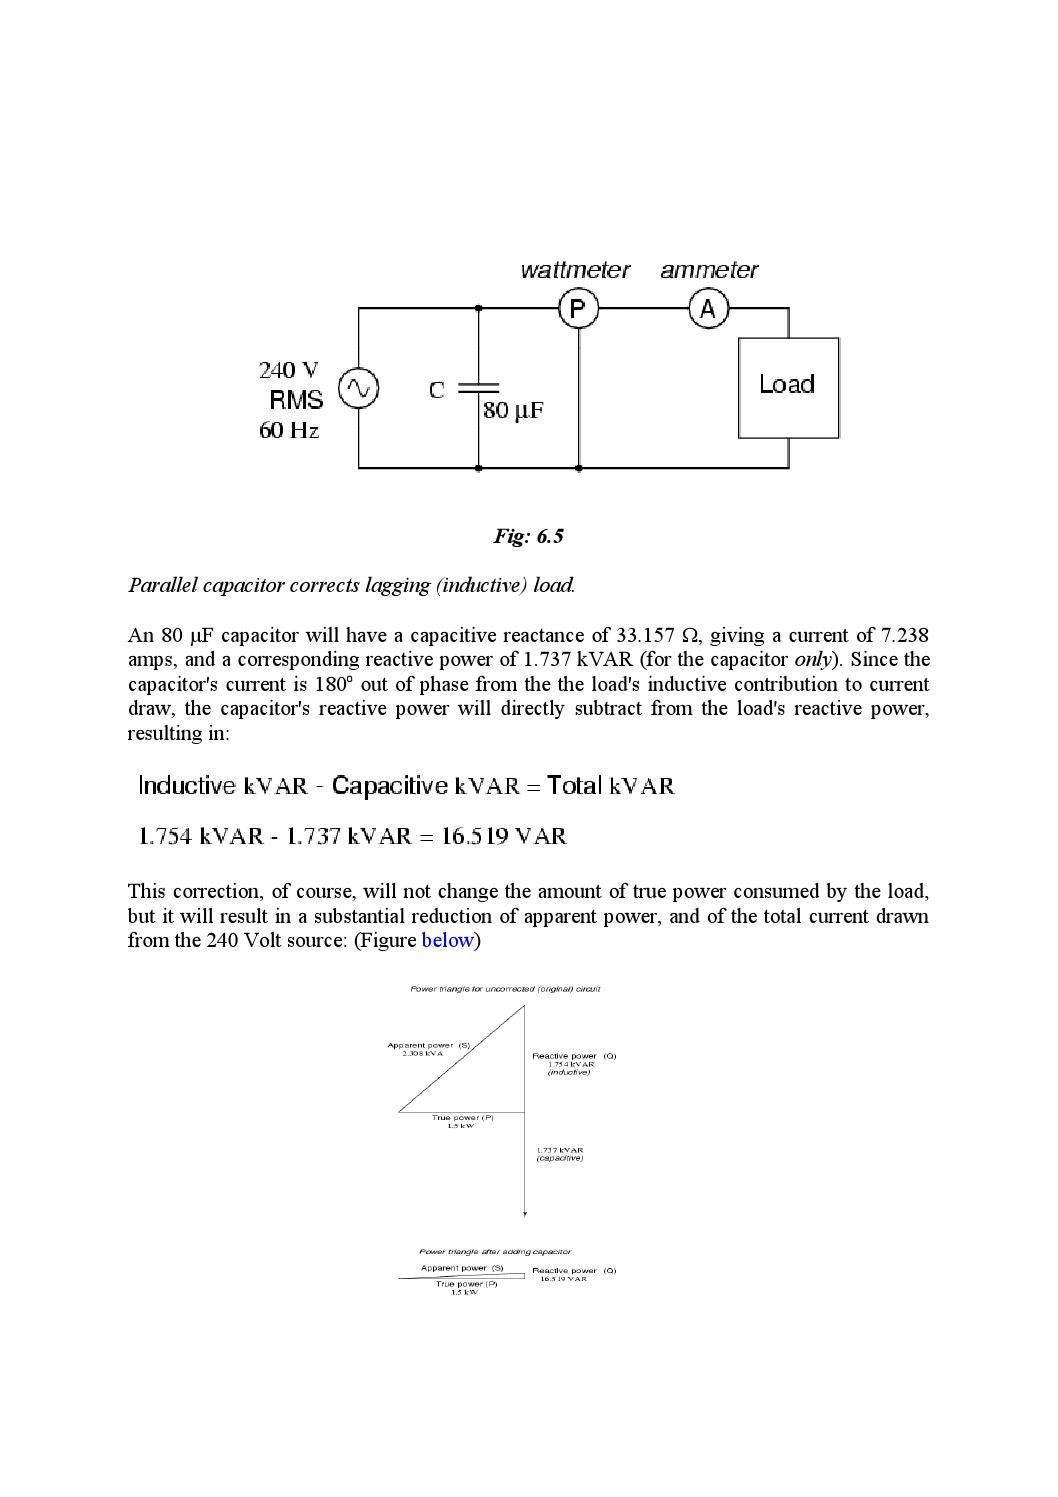 analysis on power factor by md papon issuuanalysis on power factor